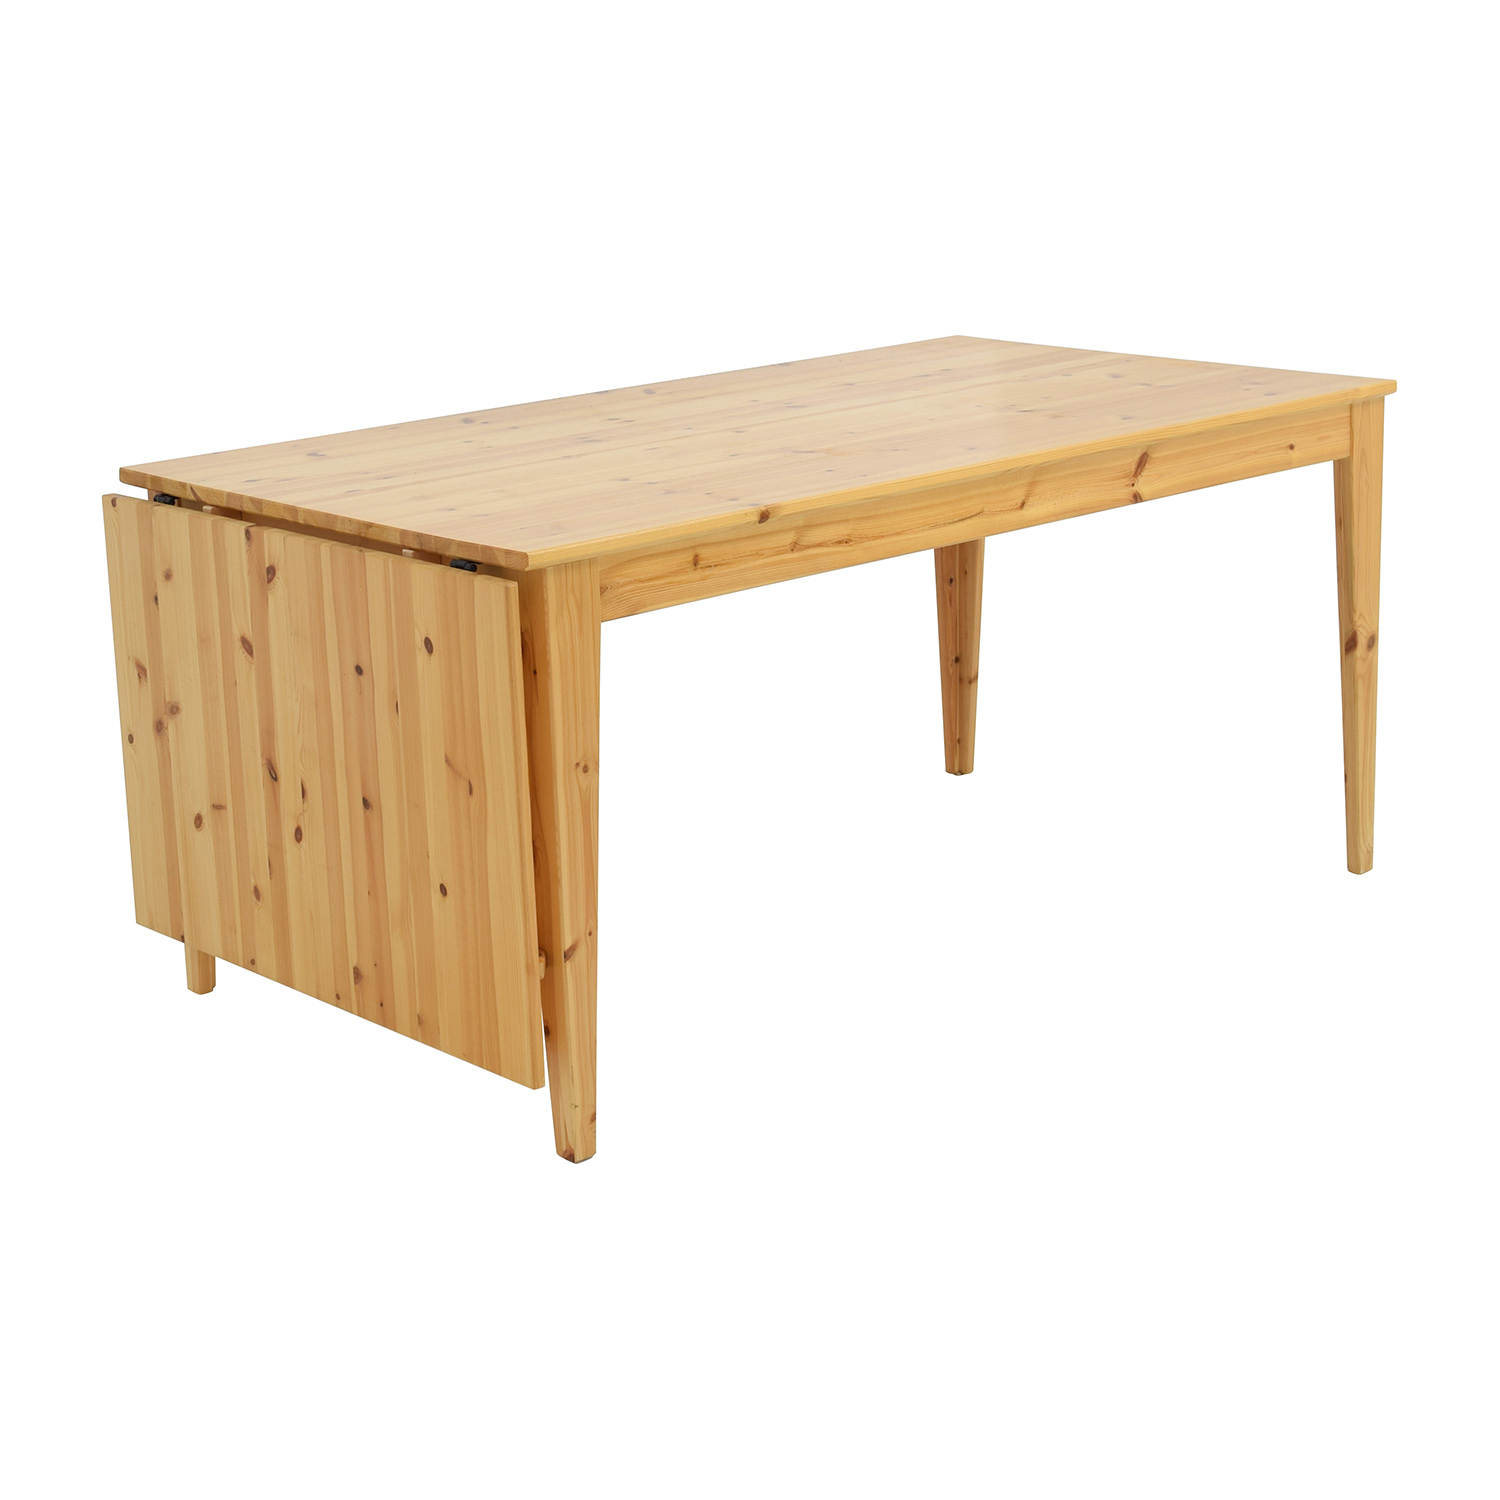 Ikea Leaf Table 61% Off - Ikea Ikea Norma's Pine Wood Drop Leaf Table / Tables